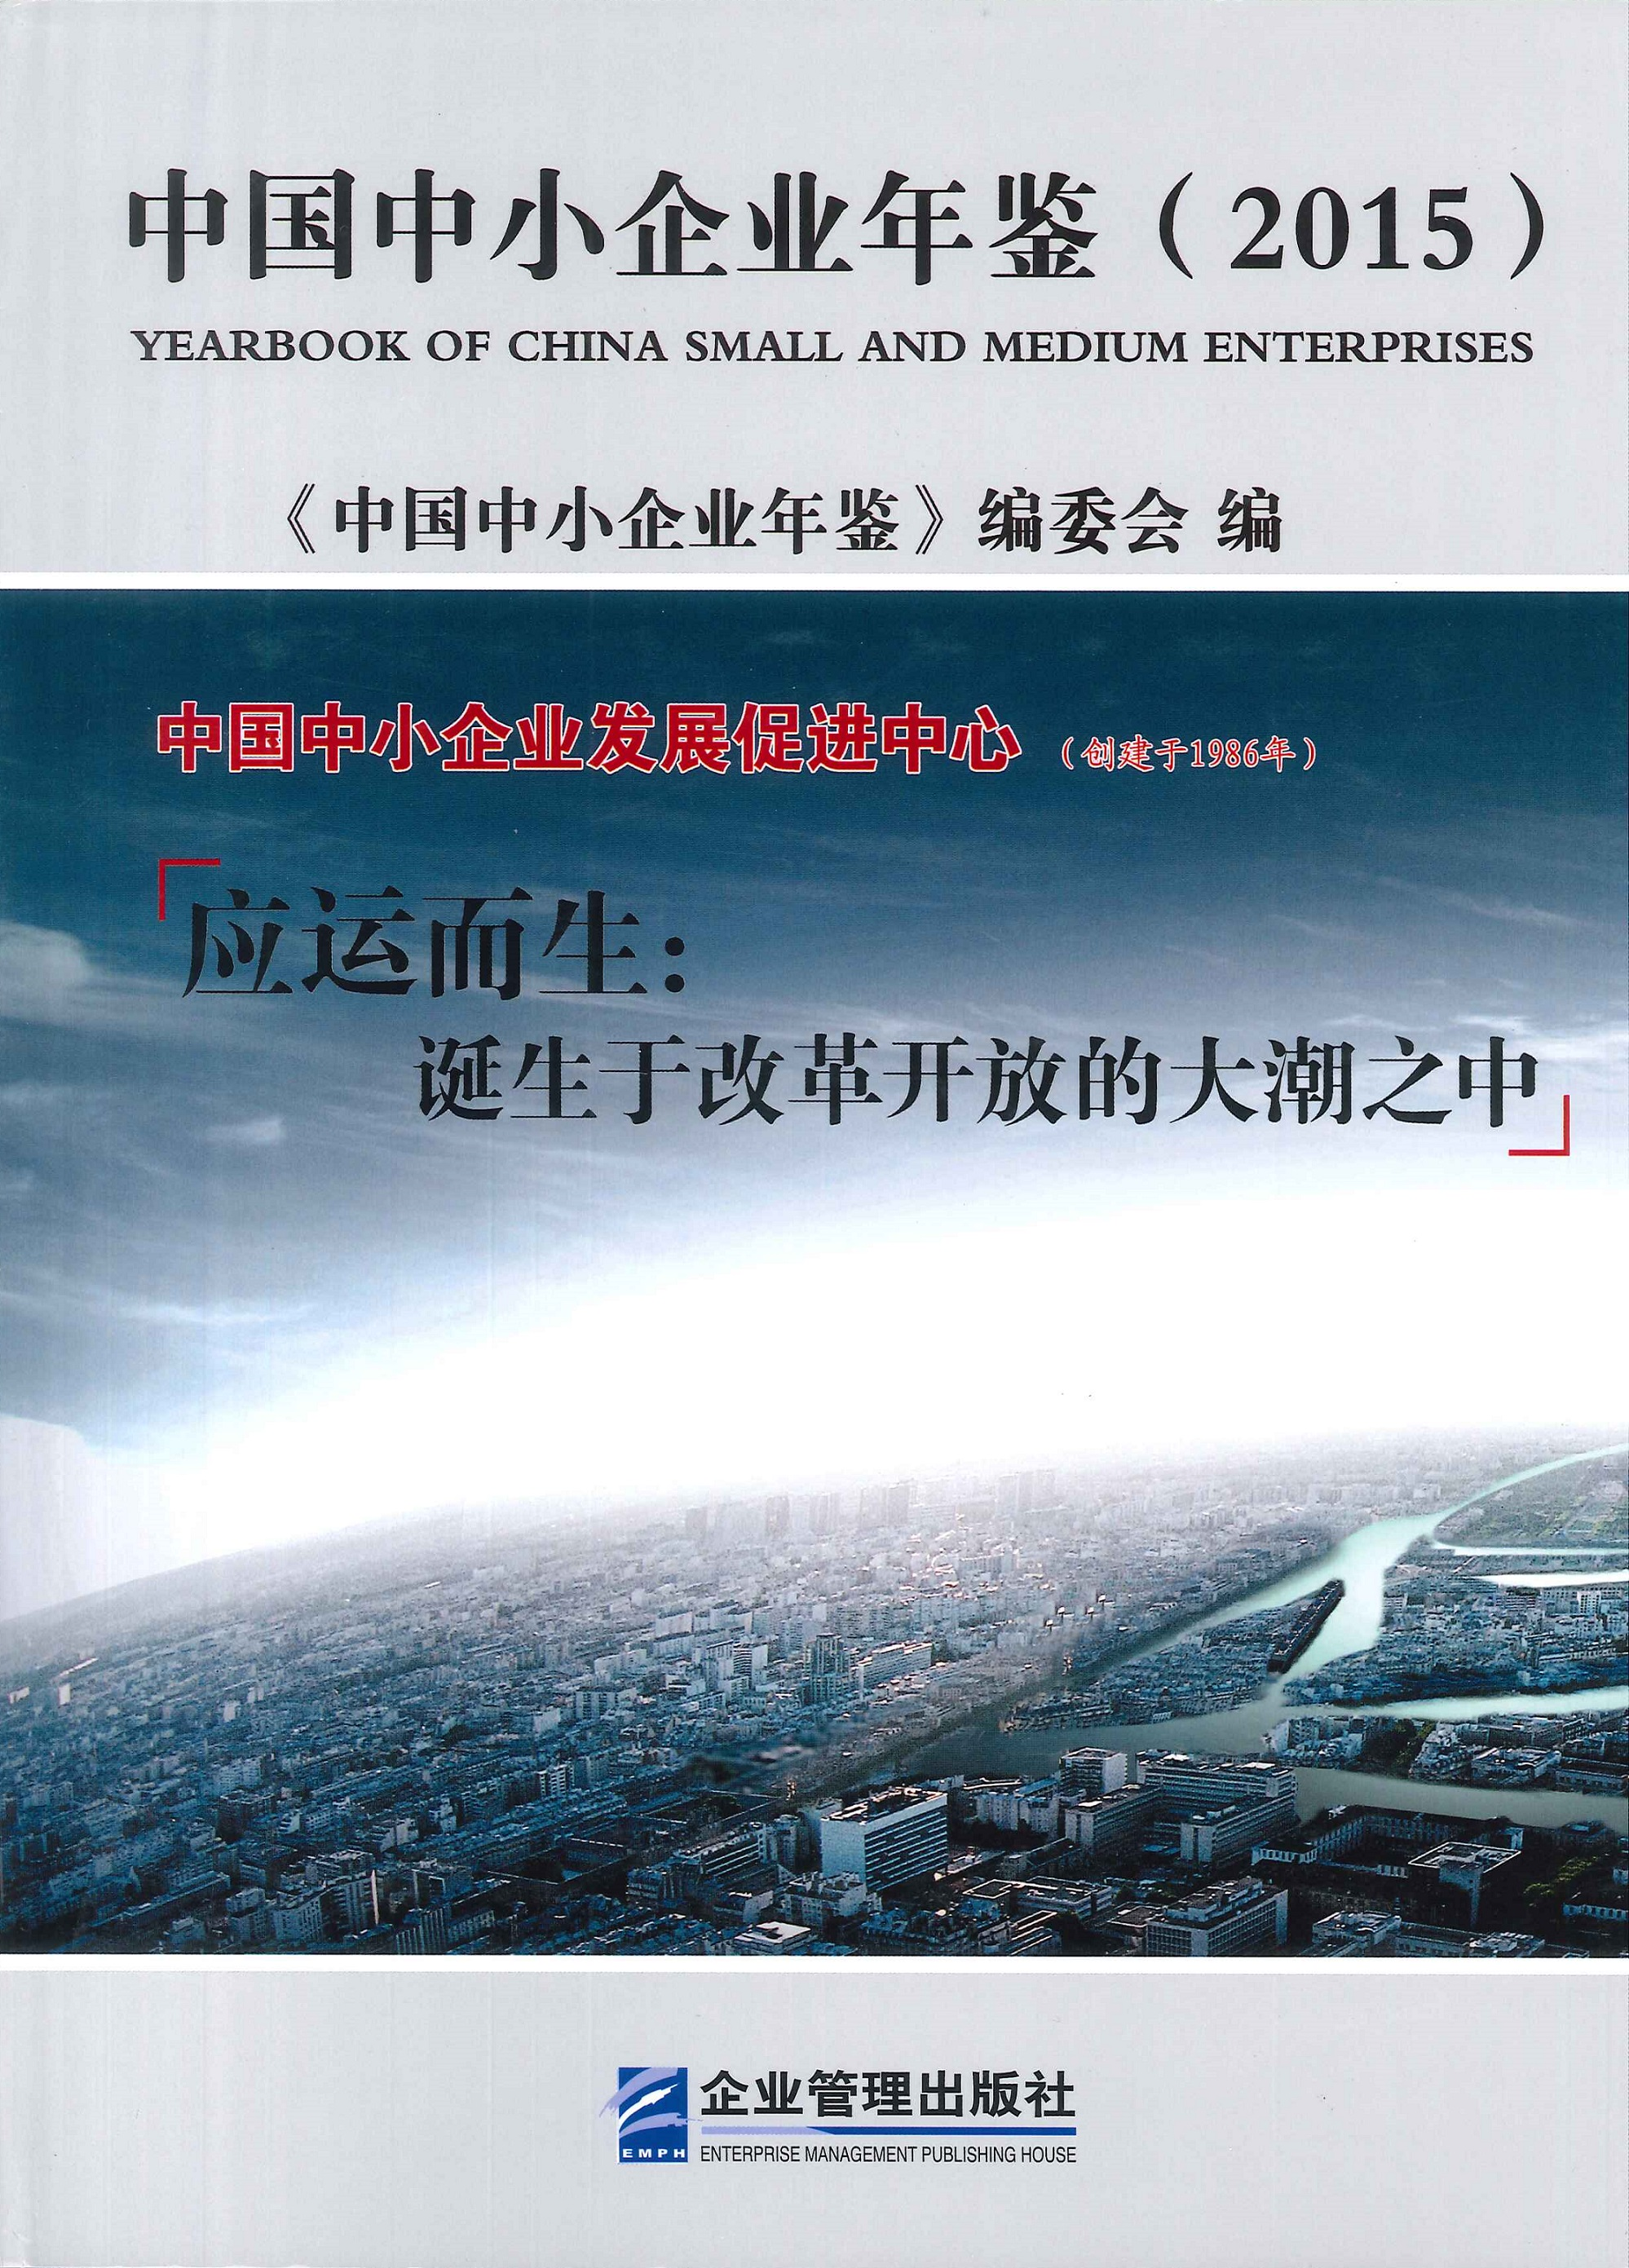 中国中小企业年鉴=Yearbook of China small and medium enterprises